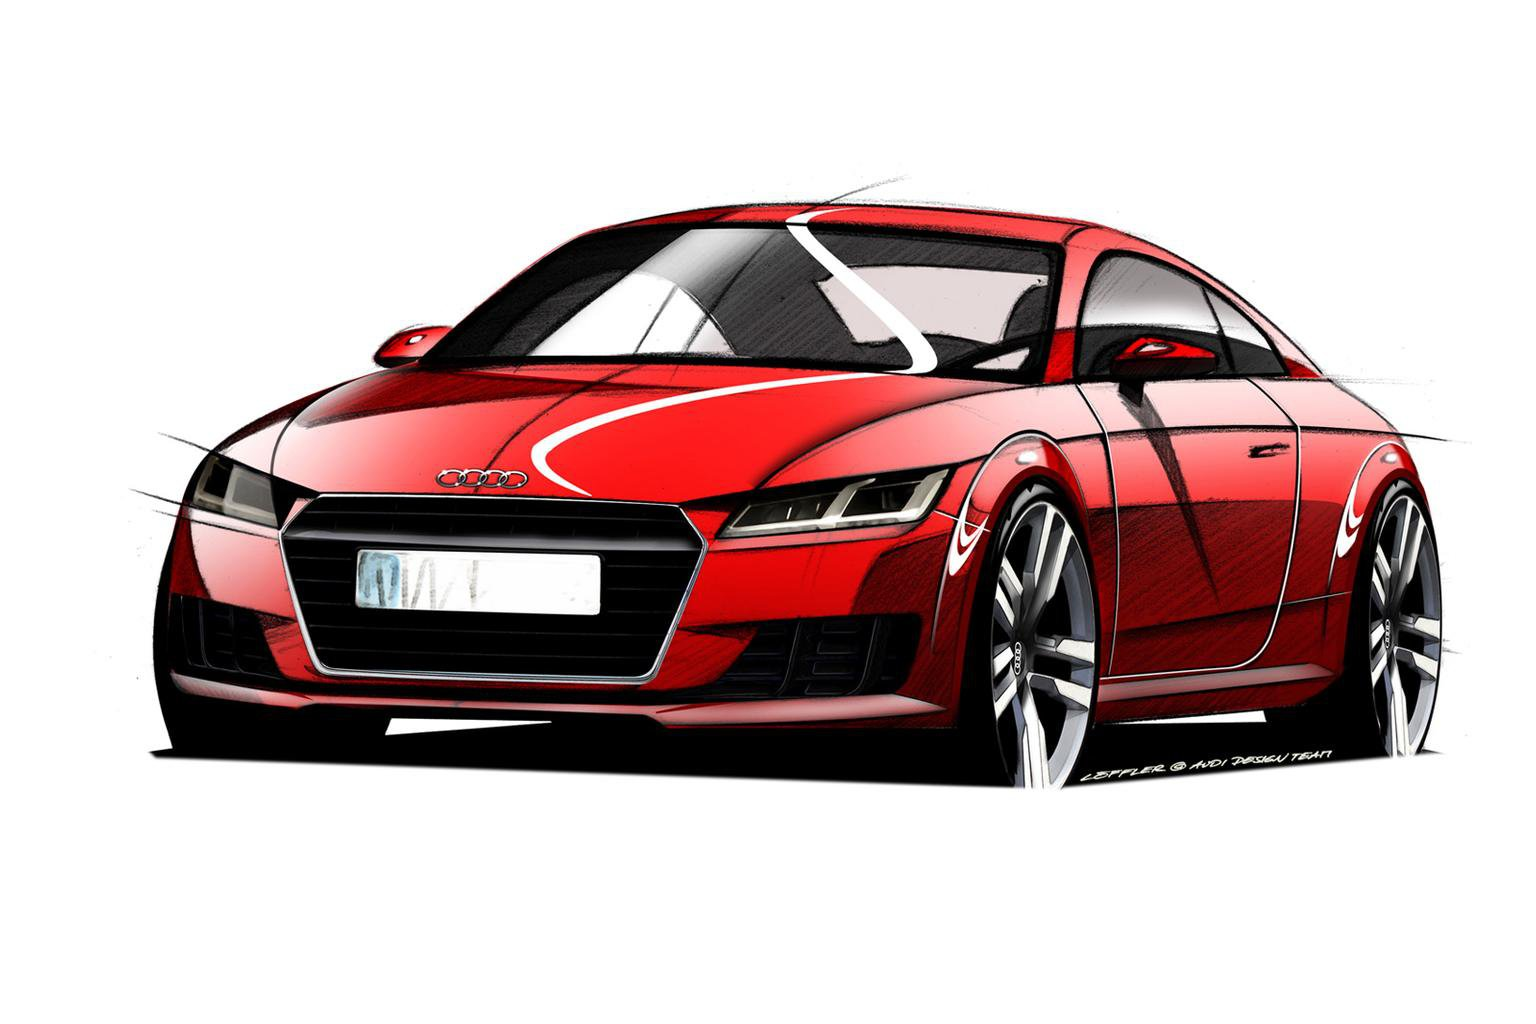 2014 Audi TT previewed in design sketches